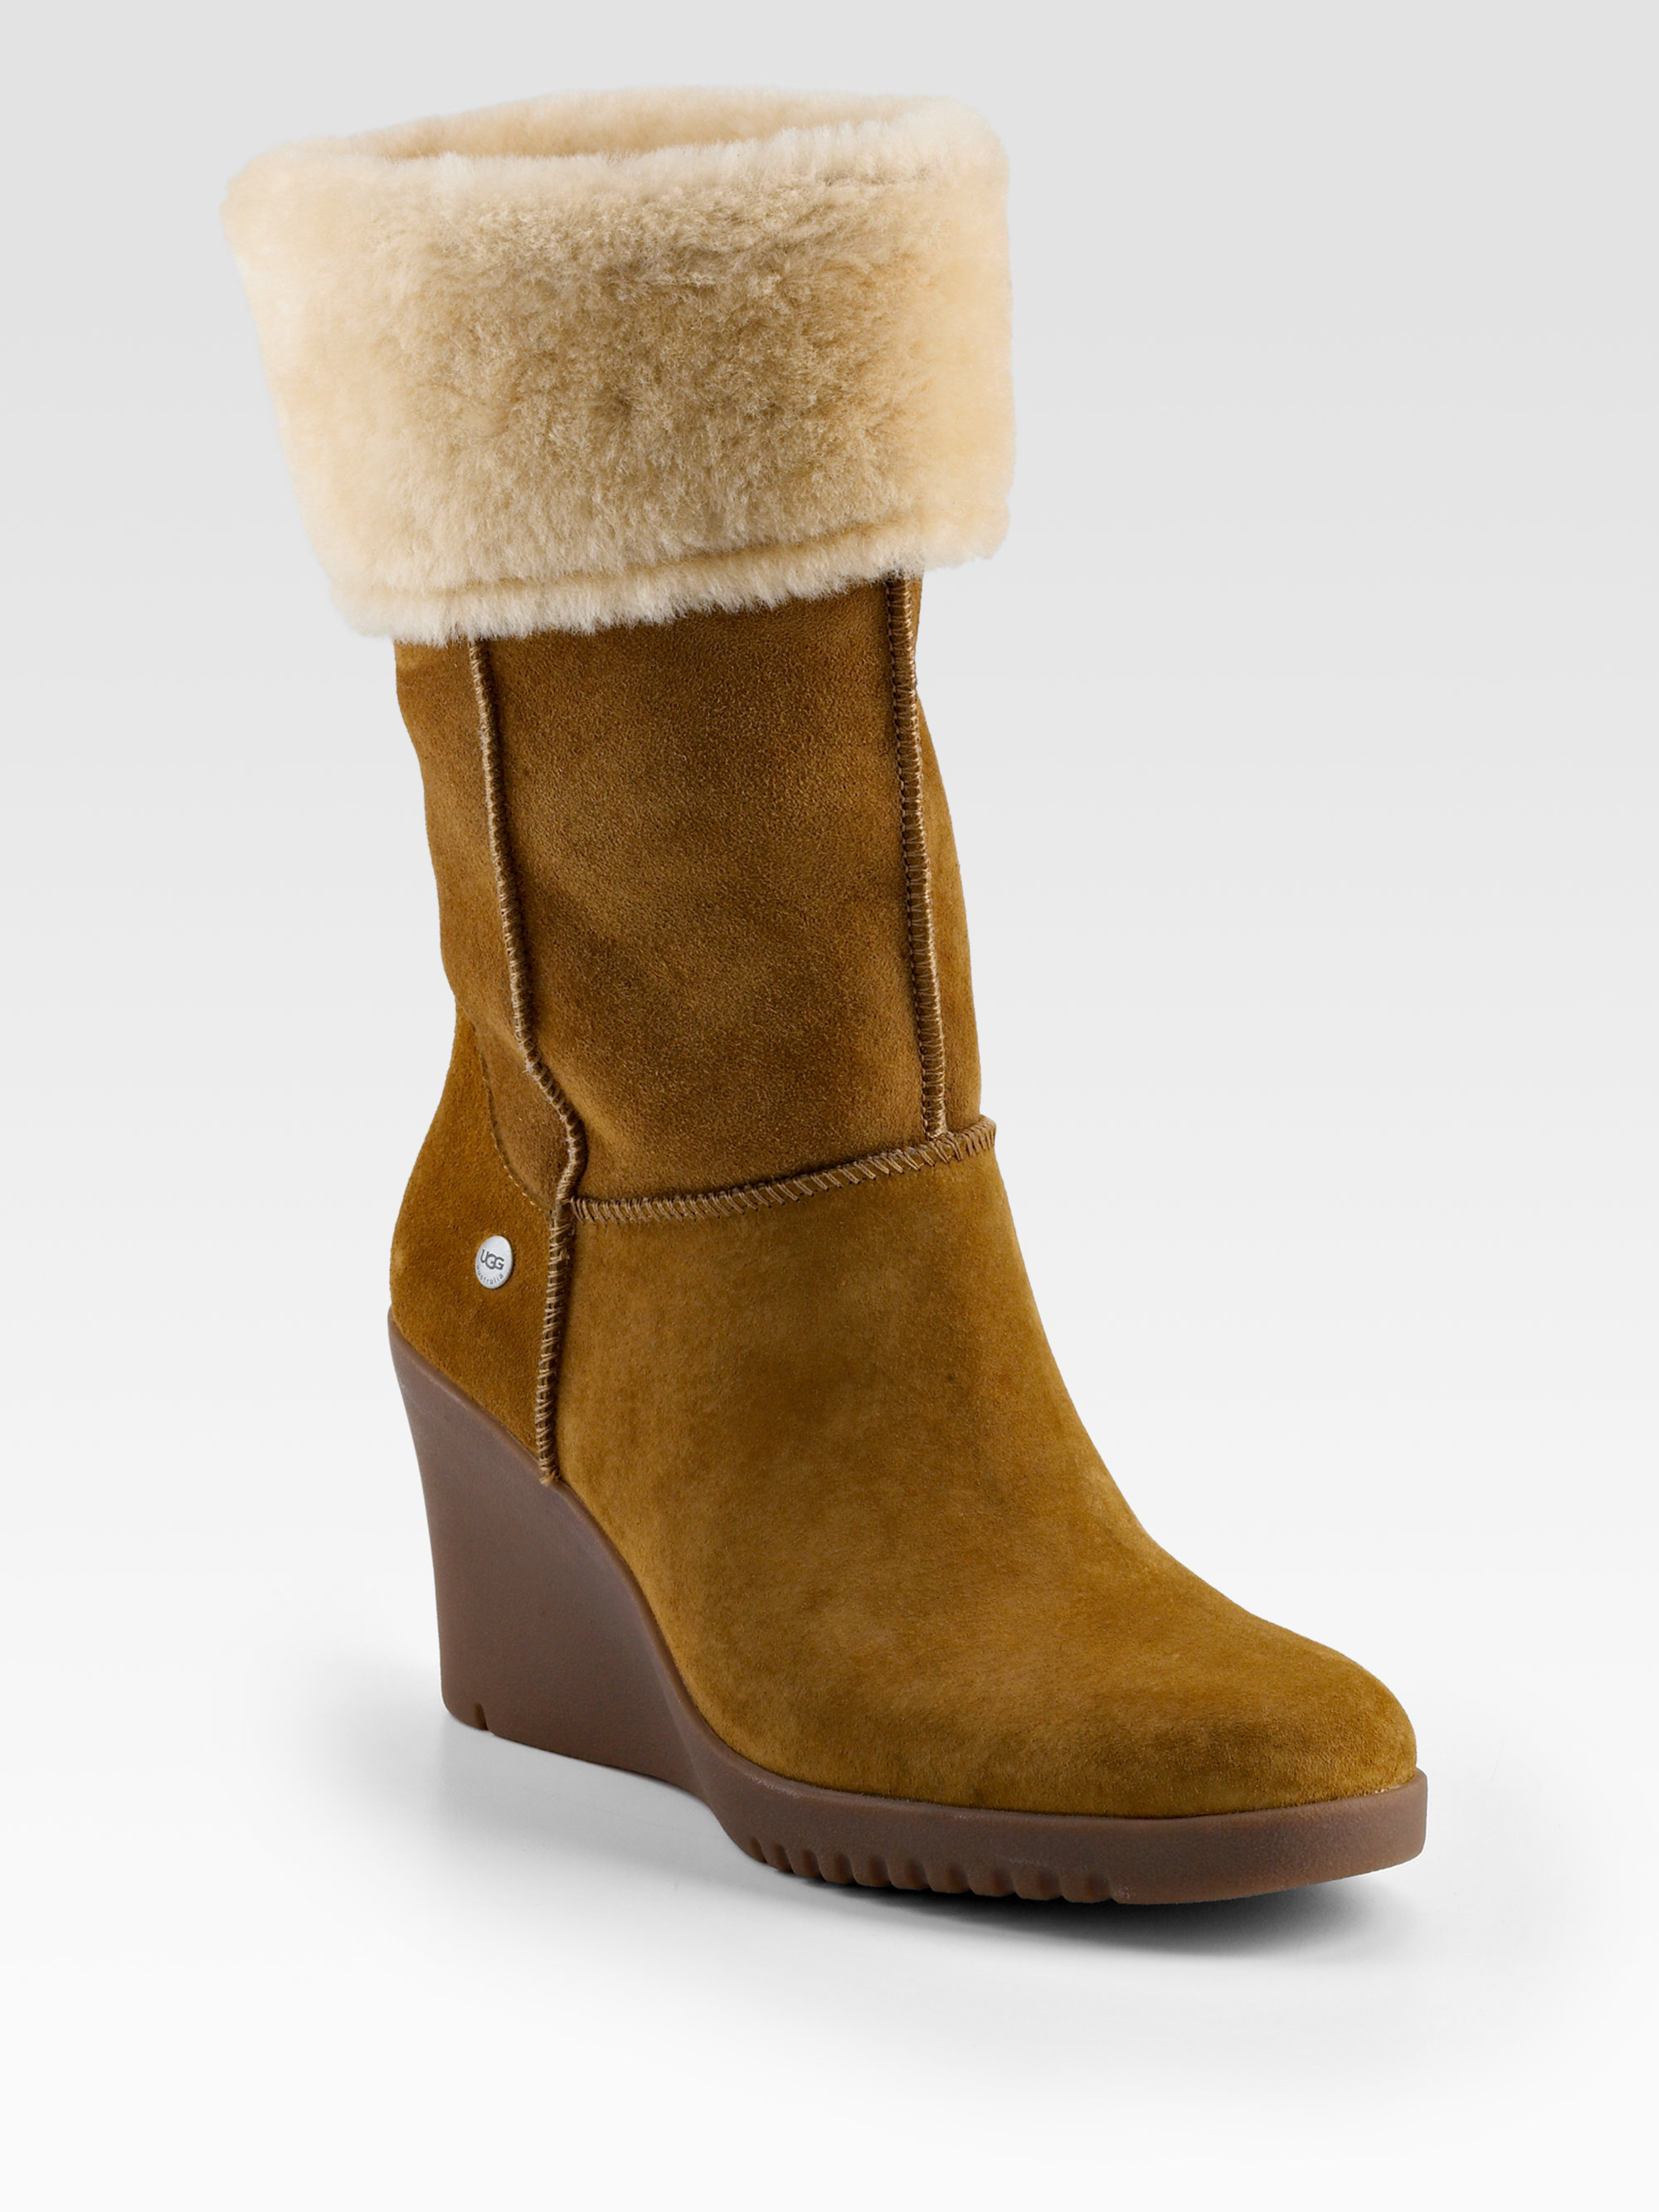 Lyst Ugg Shearling Cuff Suede Wedge Boots In Brown